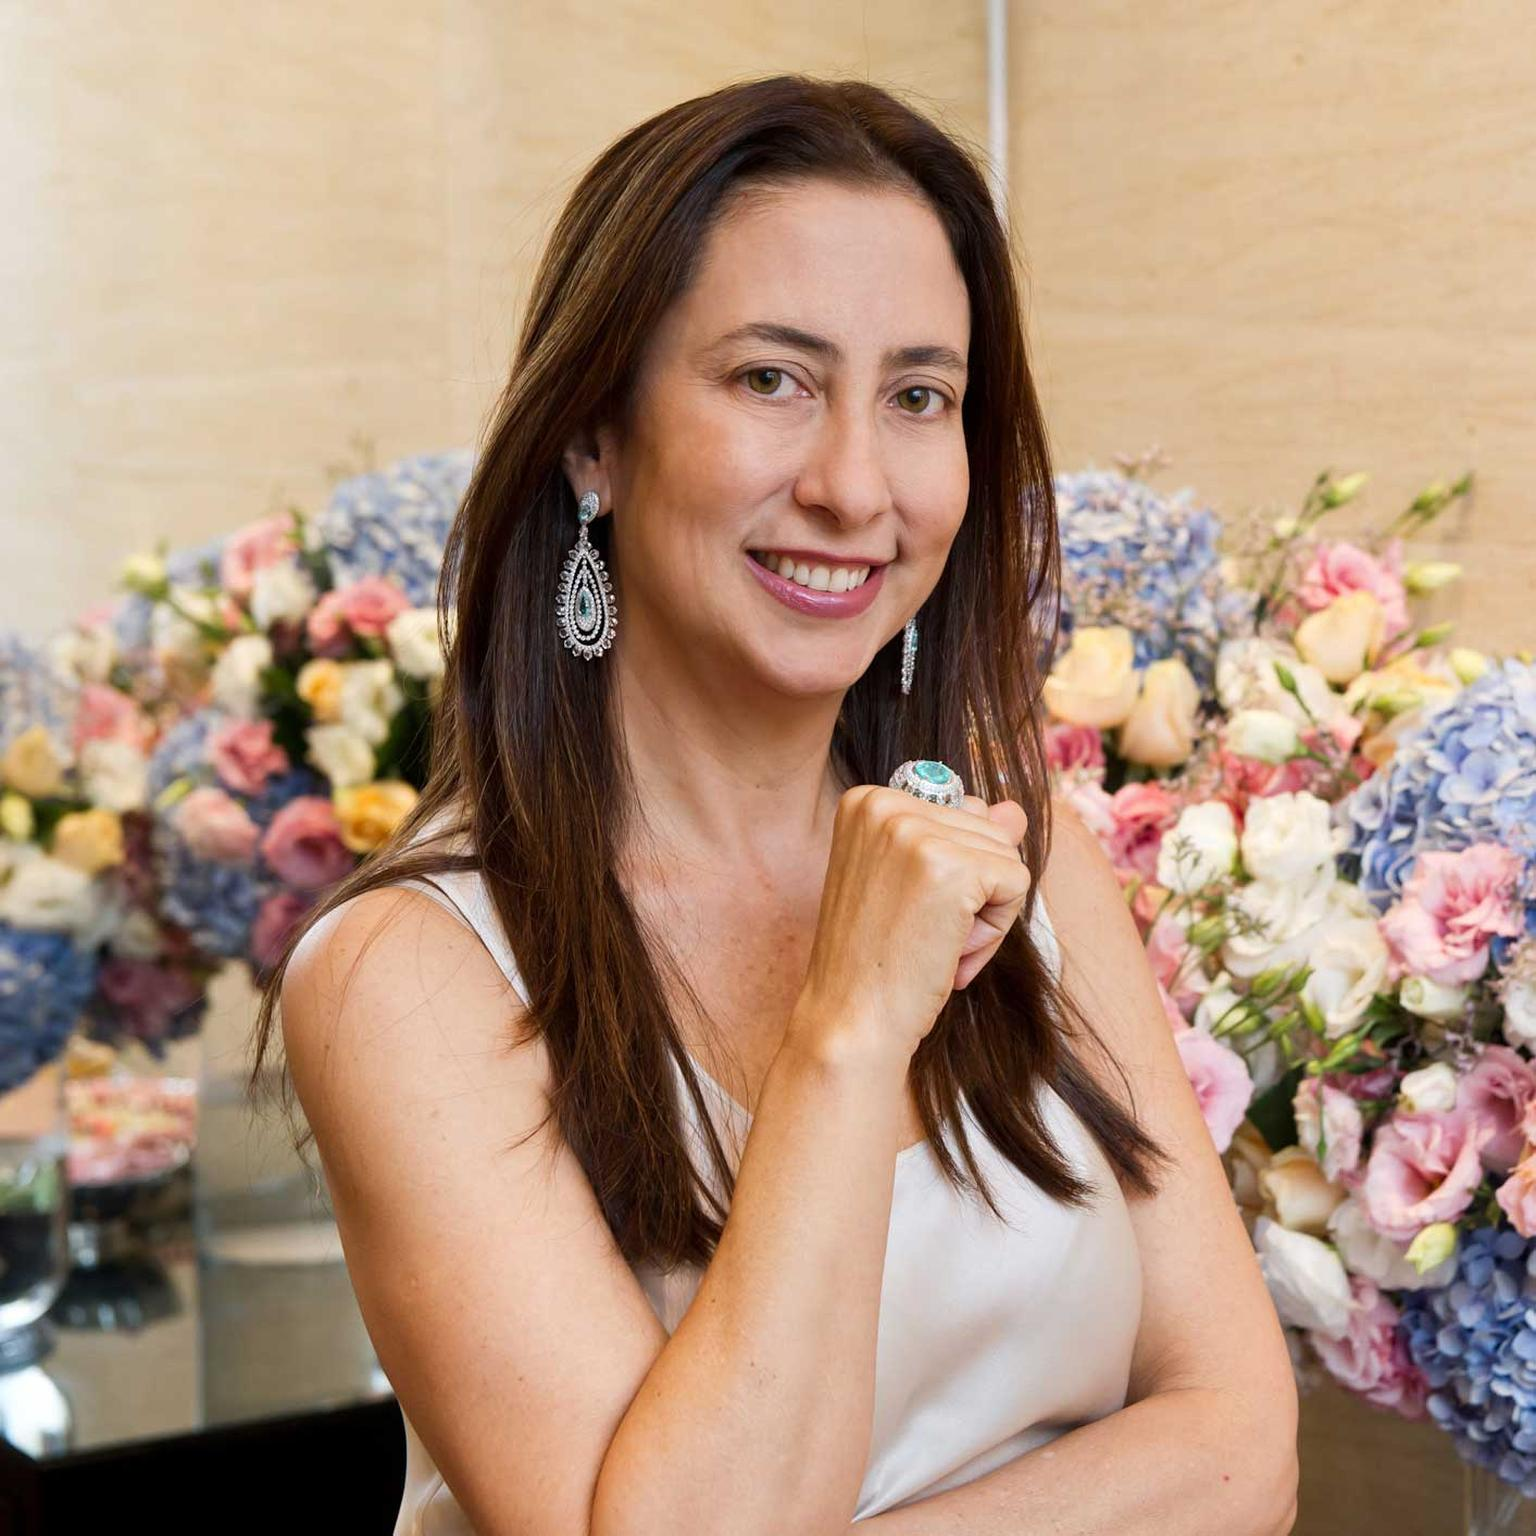 Carla Amorim is one of the most successful Brazilian jewellery designers in history